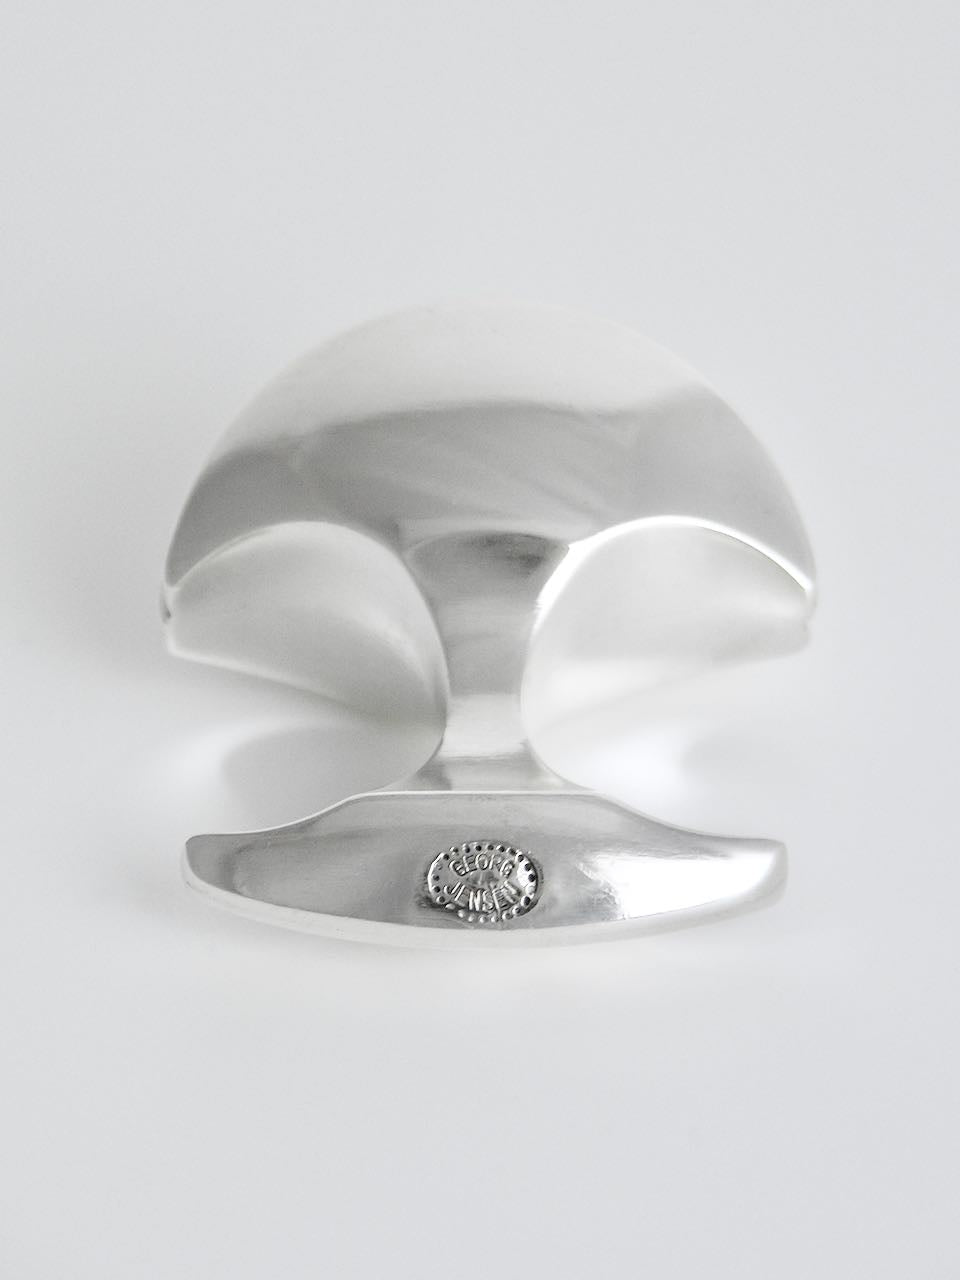 Georg Jensen Silver Domed Two Finger Ring - Design 161 Ibe Dahlquist